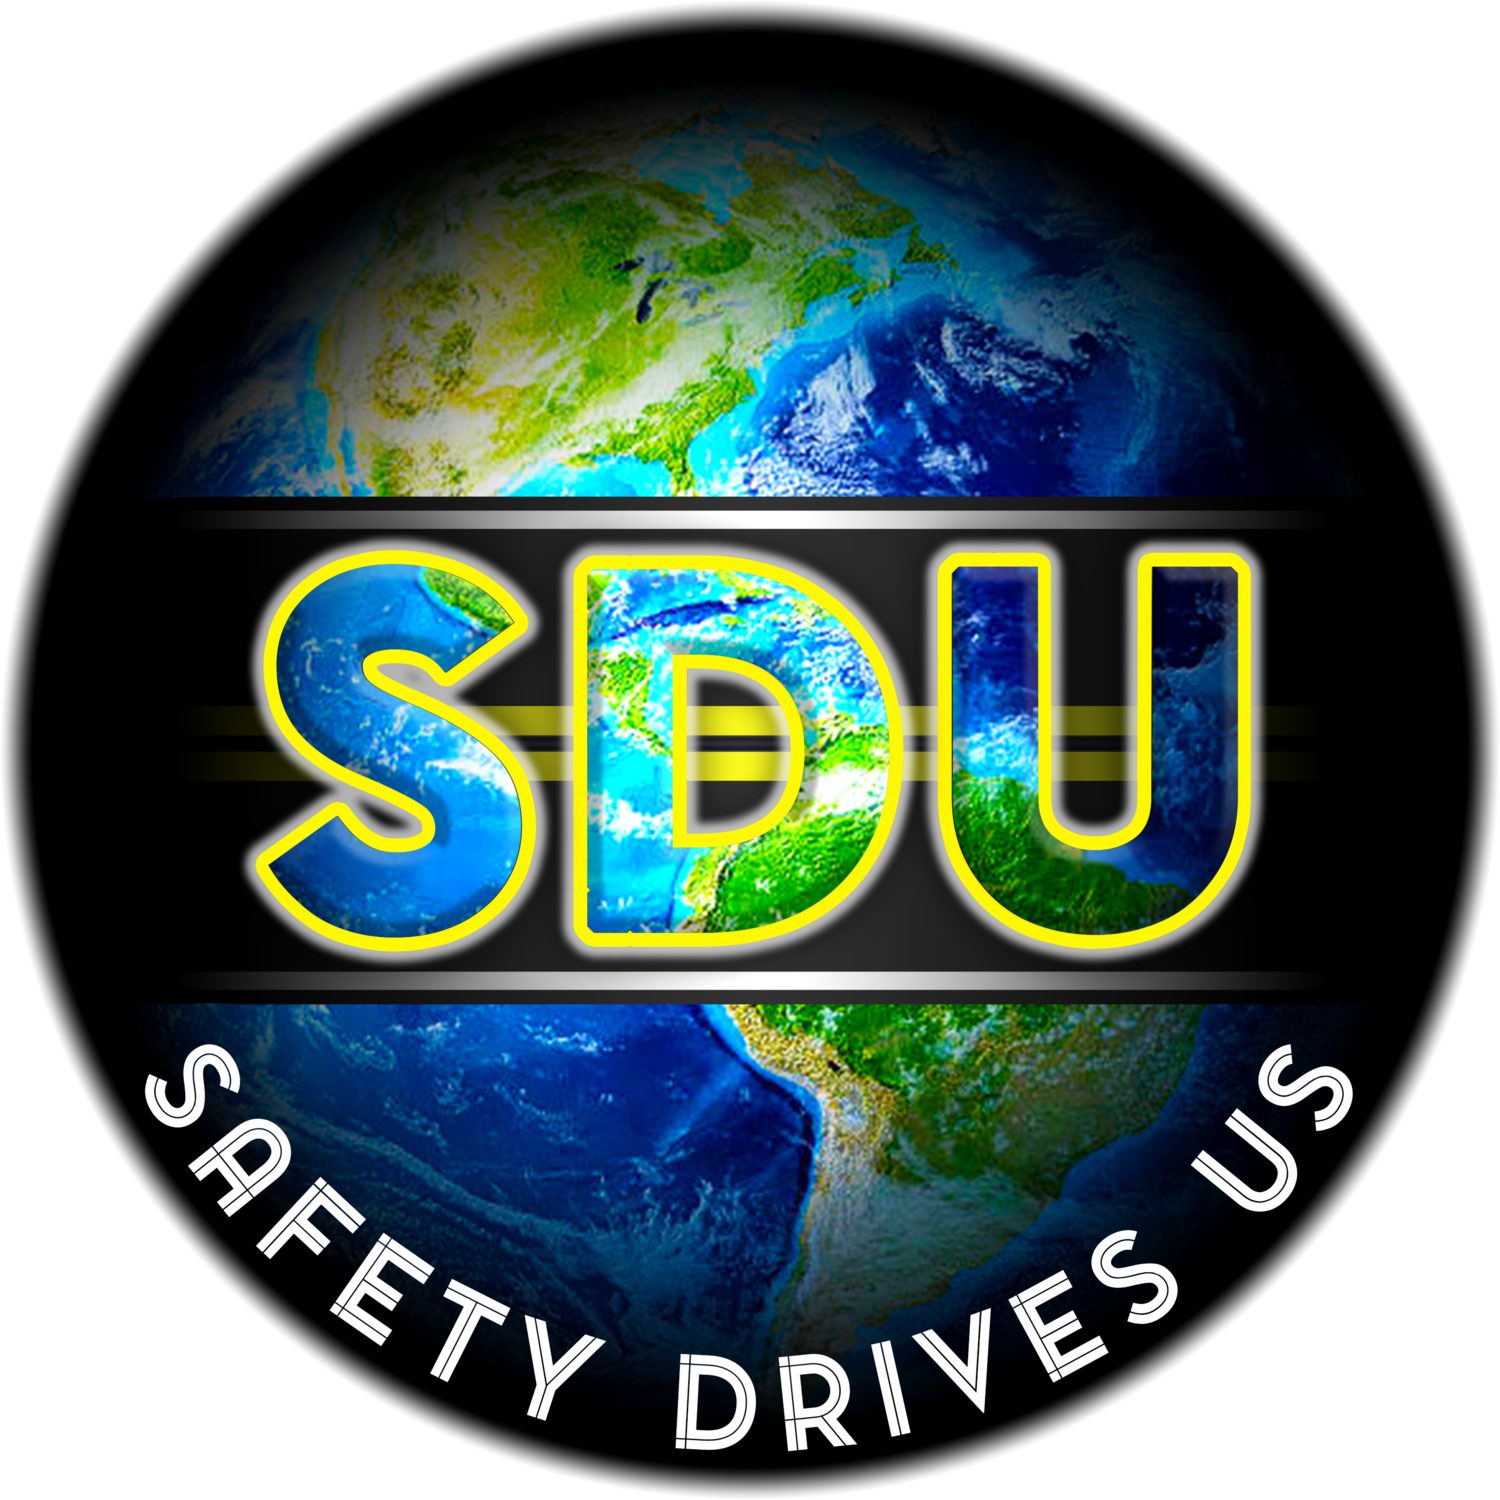 Safety Drives us